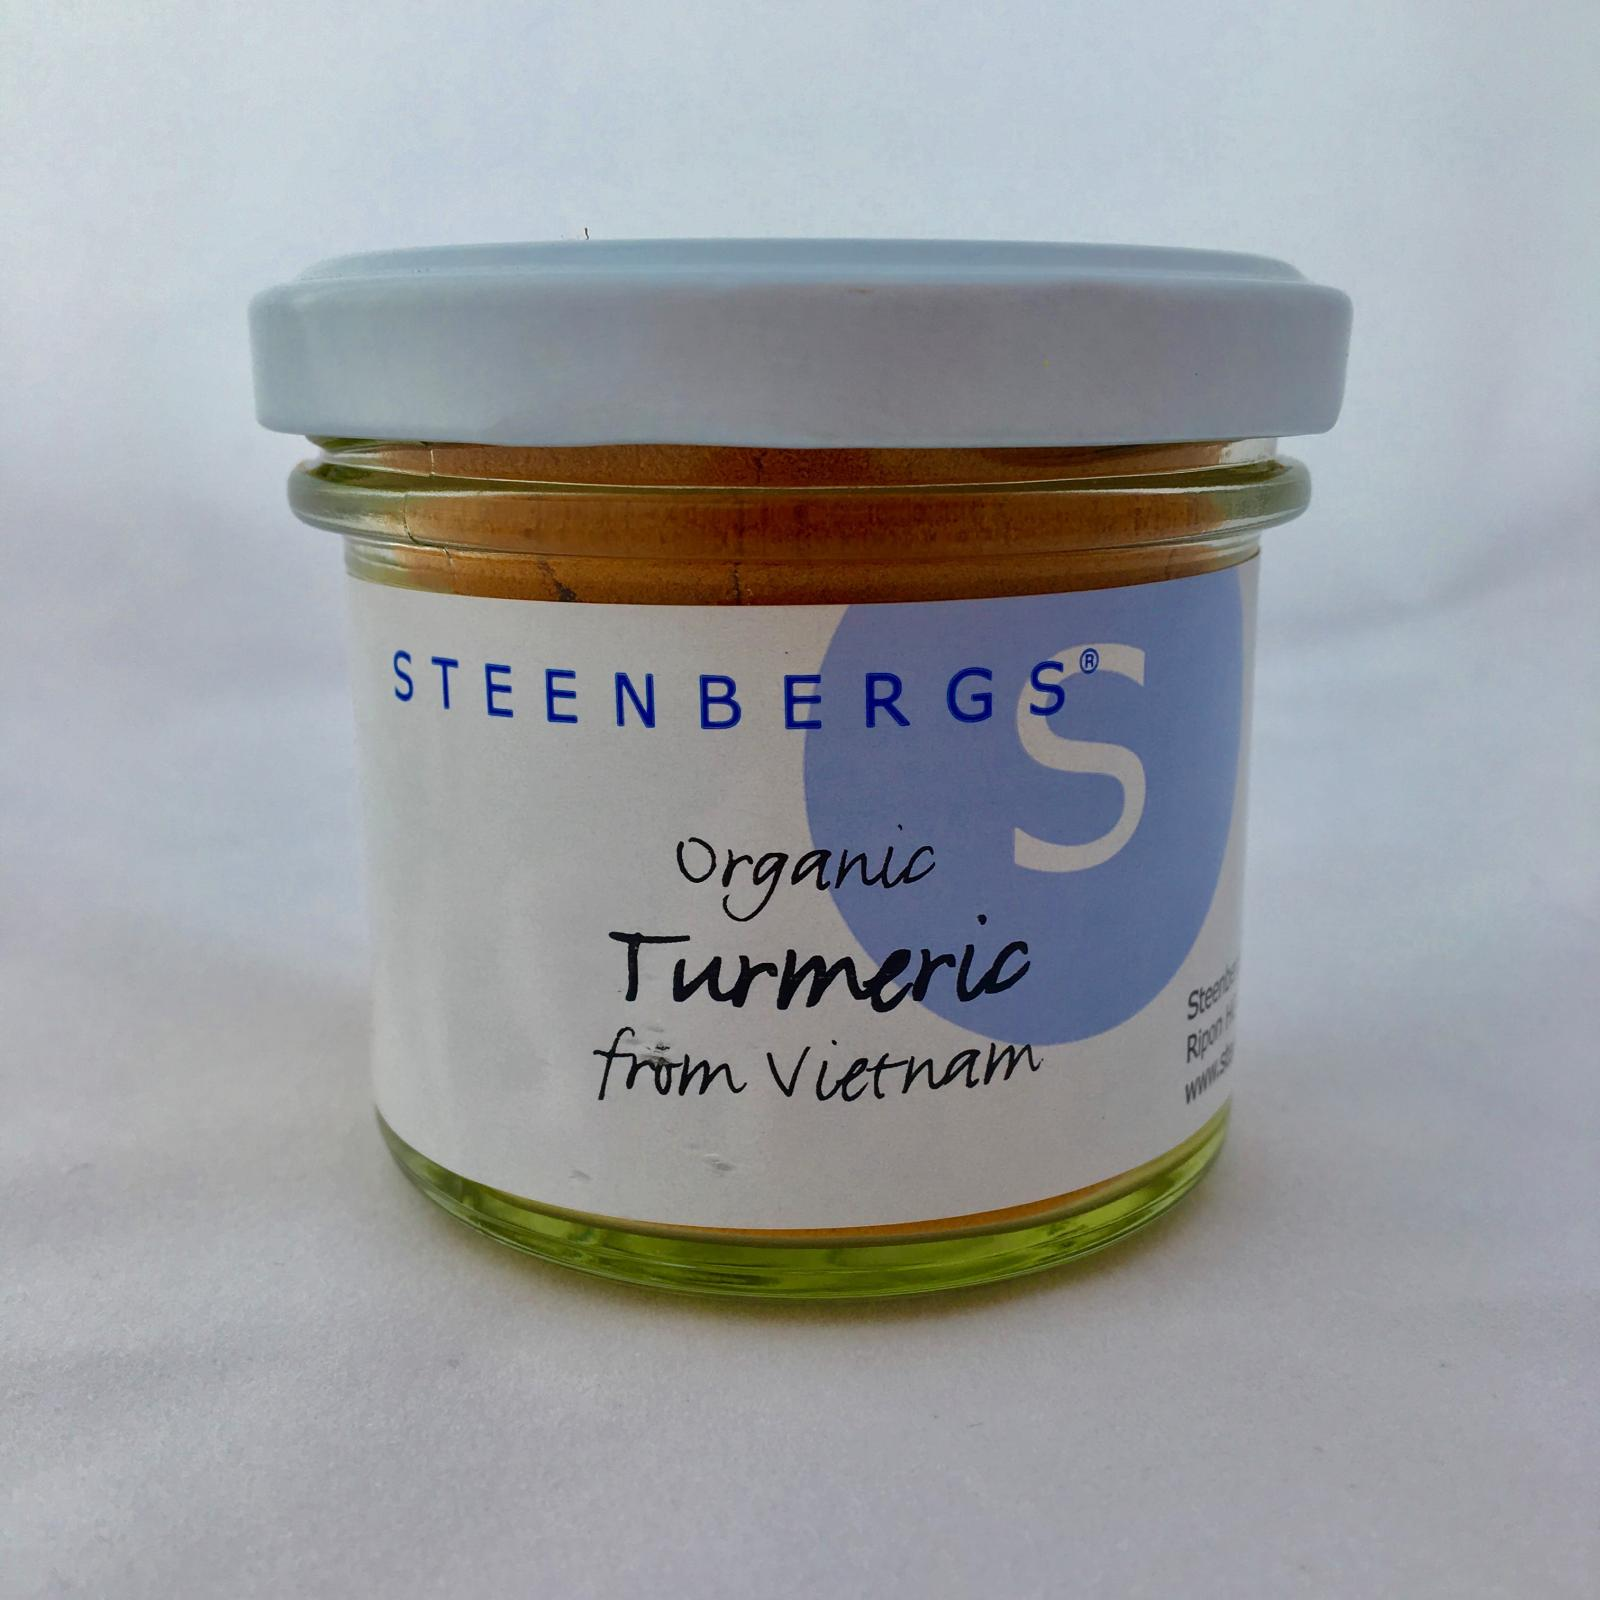 Organic turmeric is a major anti-inflammatory, good enough for coughs, colds, arthritis, rheumatism and many more conditions.  Eat with black pepper.